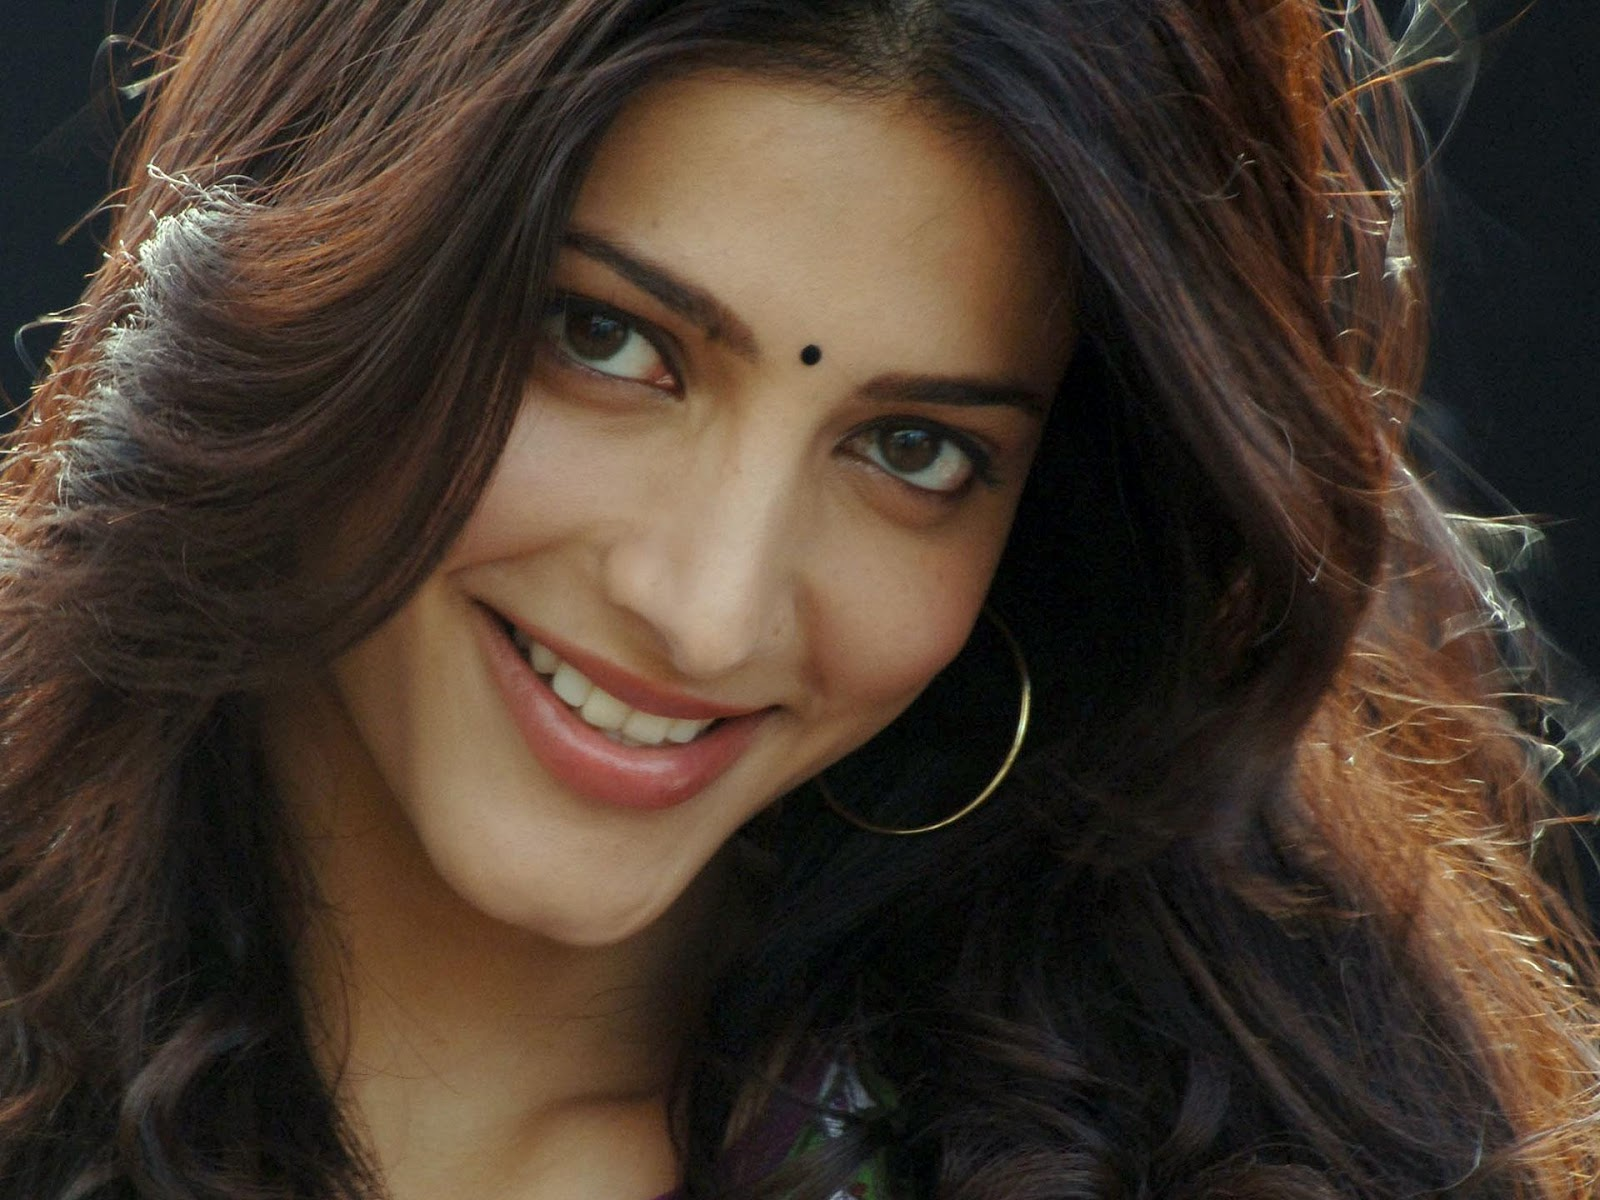 http://4.bp.blogspot.com/-ac-pGaOO0WI/UXx1zGMmtzI/AAAAAAAAG5g/w2OpZd2VpF0/s1600/shruti+hassan+hd+wallpapers+new+collection+(7).jpeg